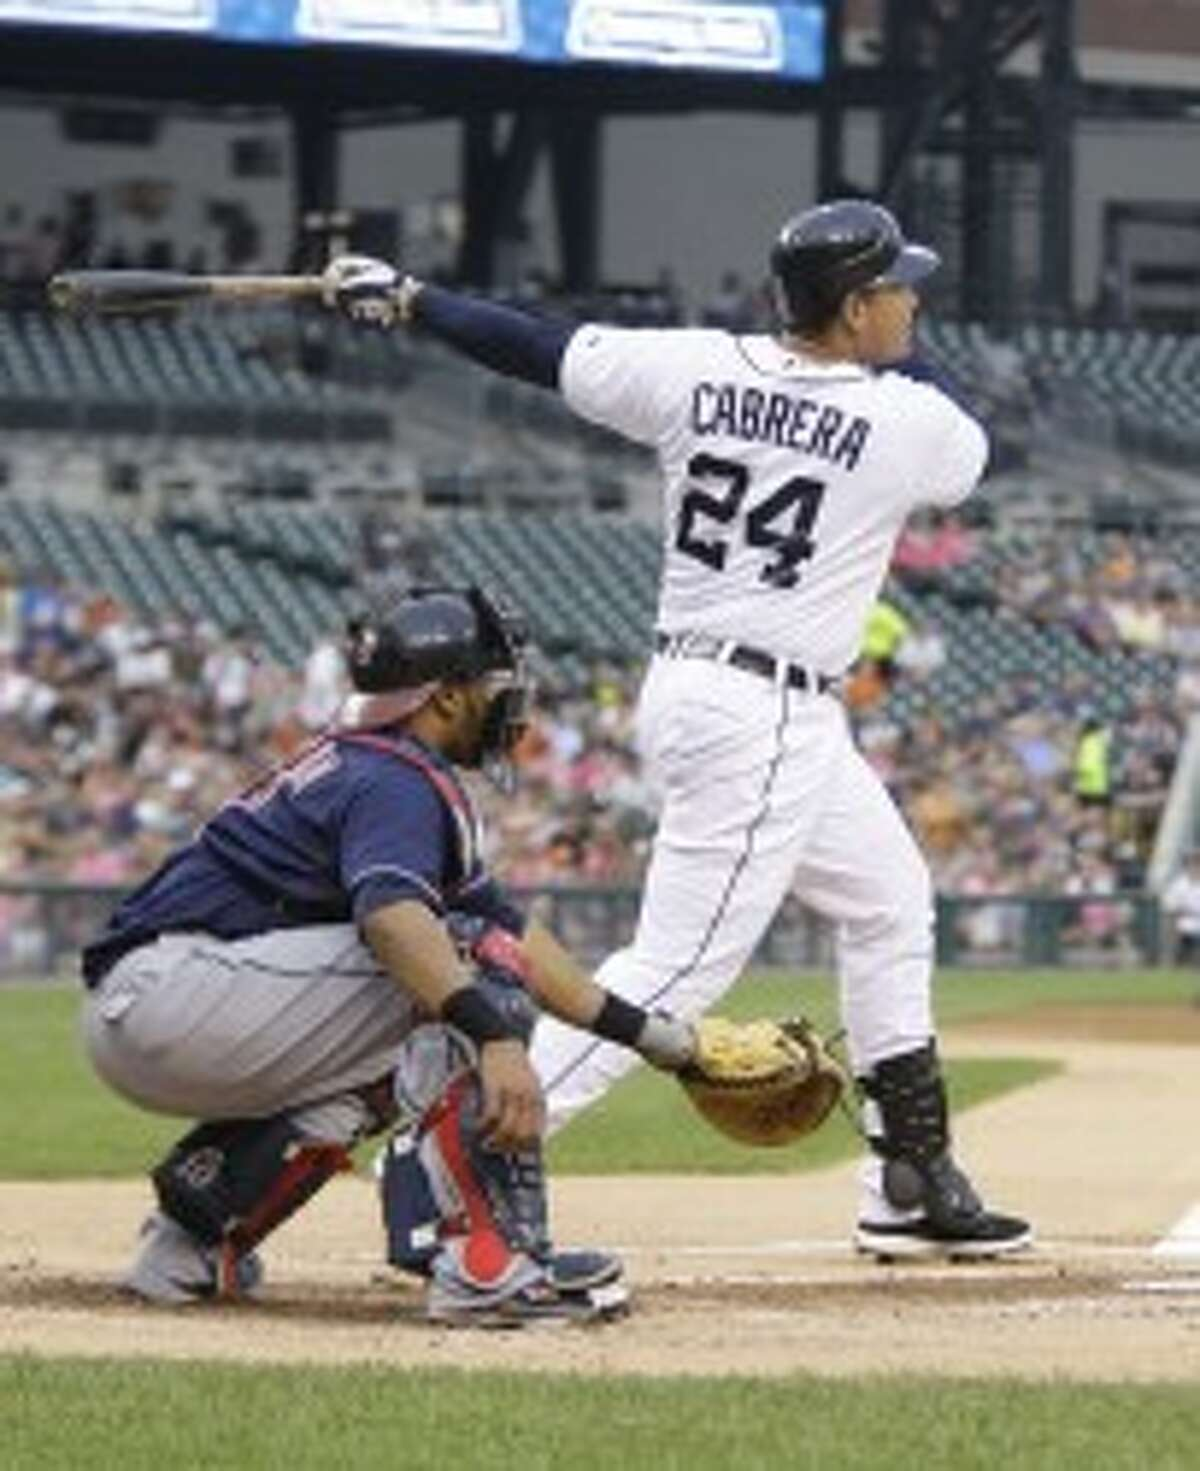 Tigers third baseman Miguel Cabrera hits a two-run homer in the first inning against the Cleveland Indians in Detroit on Wednesday. (Julian H. Gonzalez/Detroit Free Press/MCT)